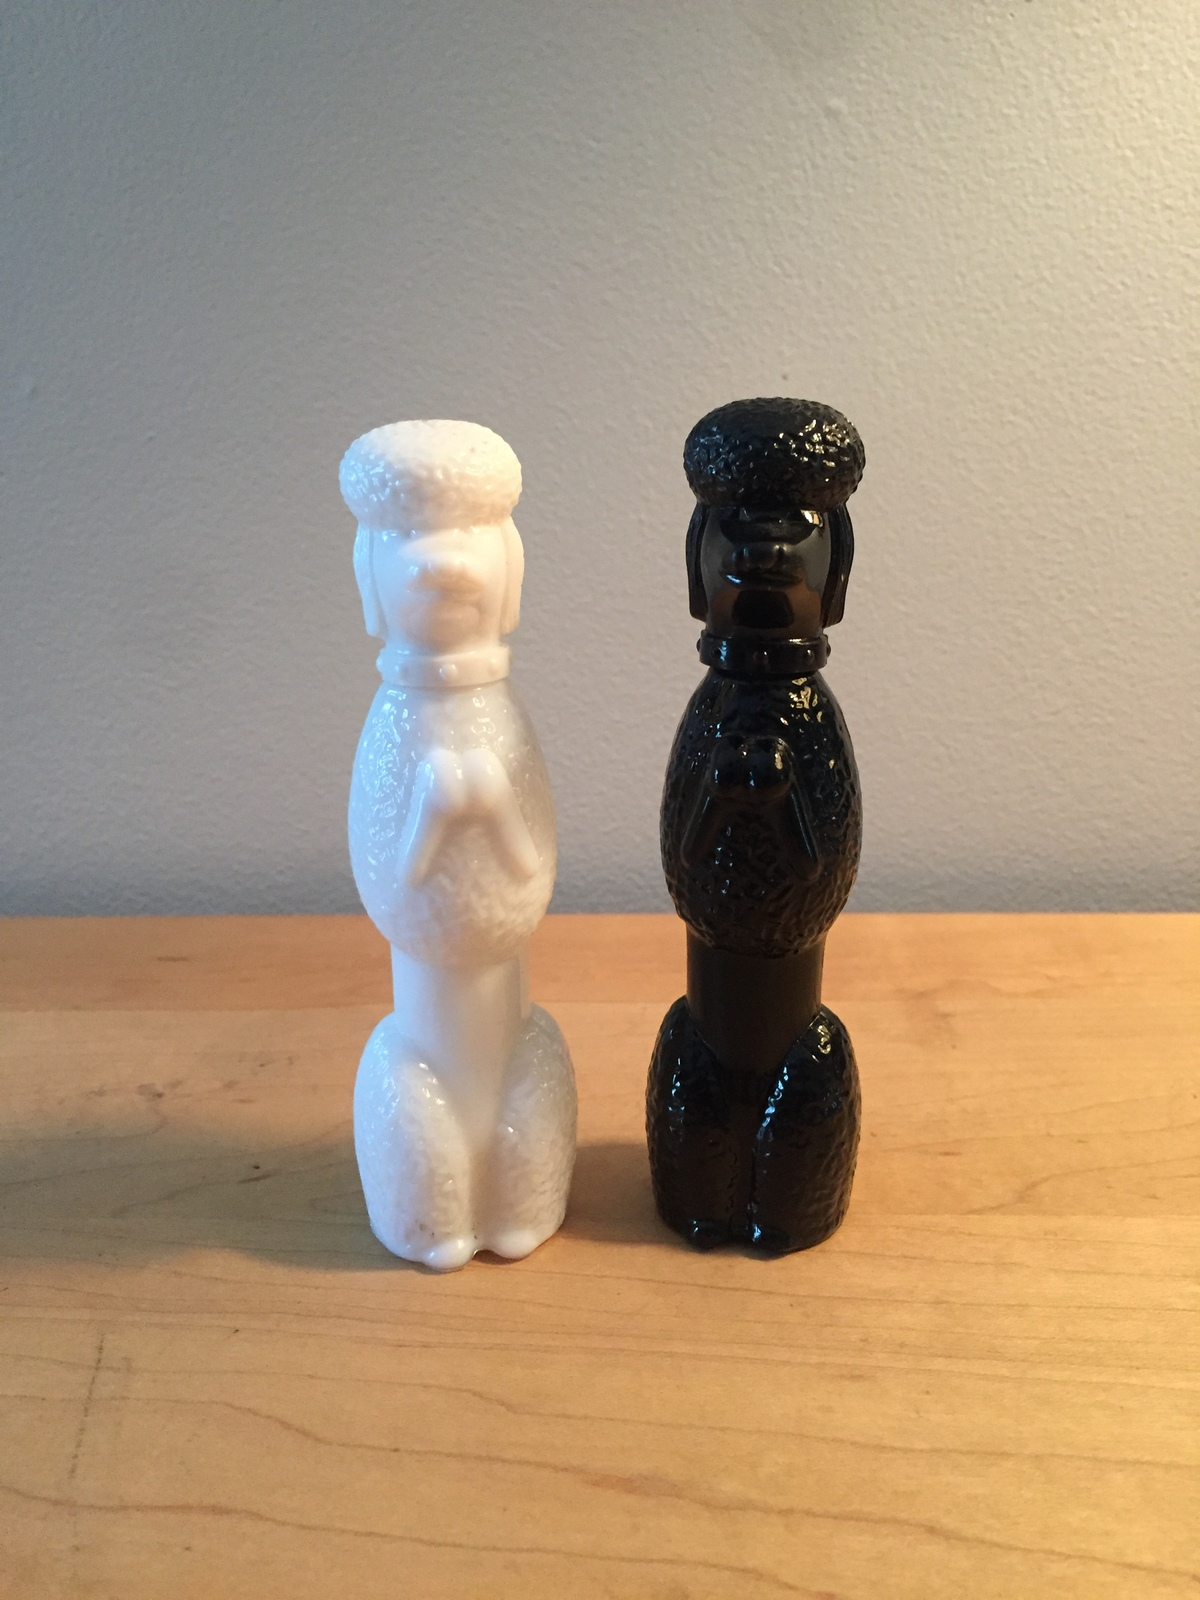 70s Avon Black and White Poodles cologne bottles (Cotillion)